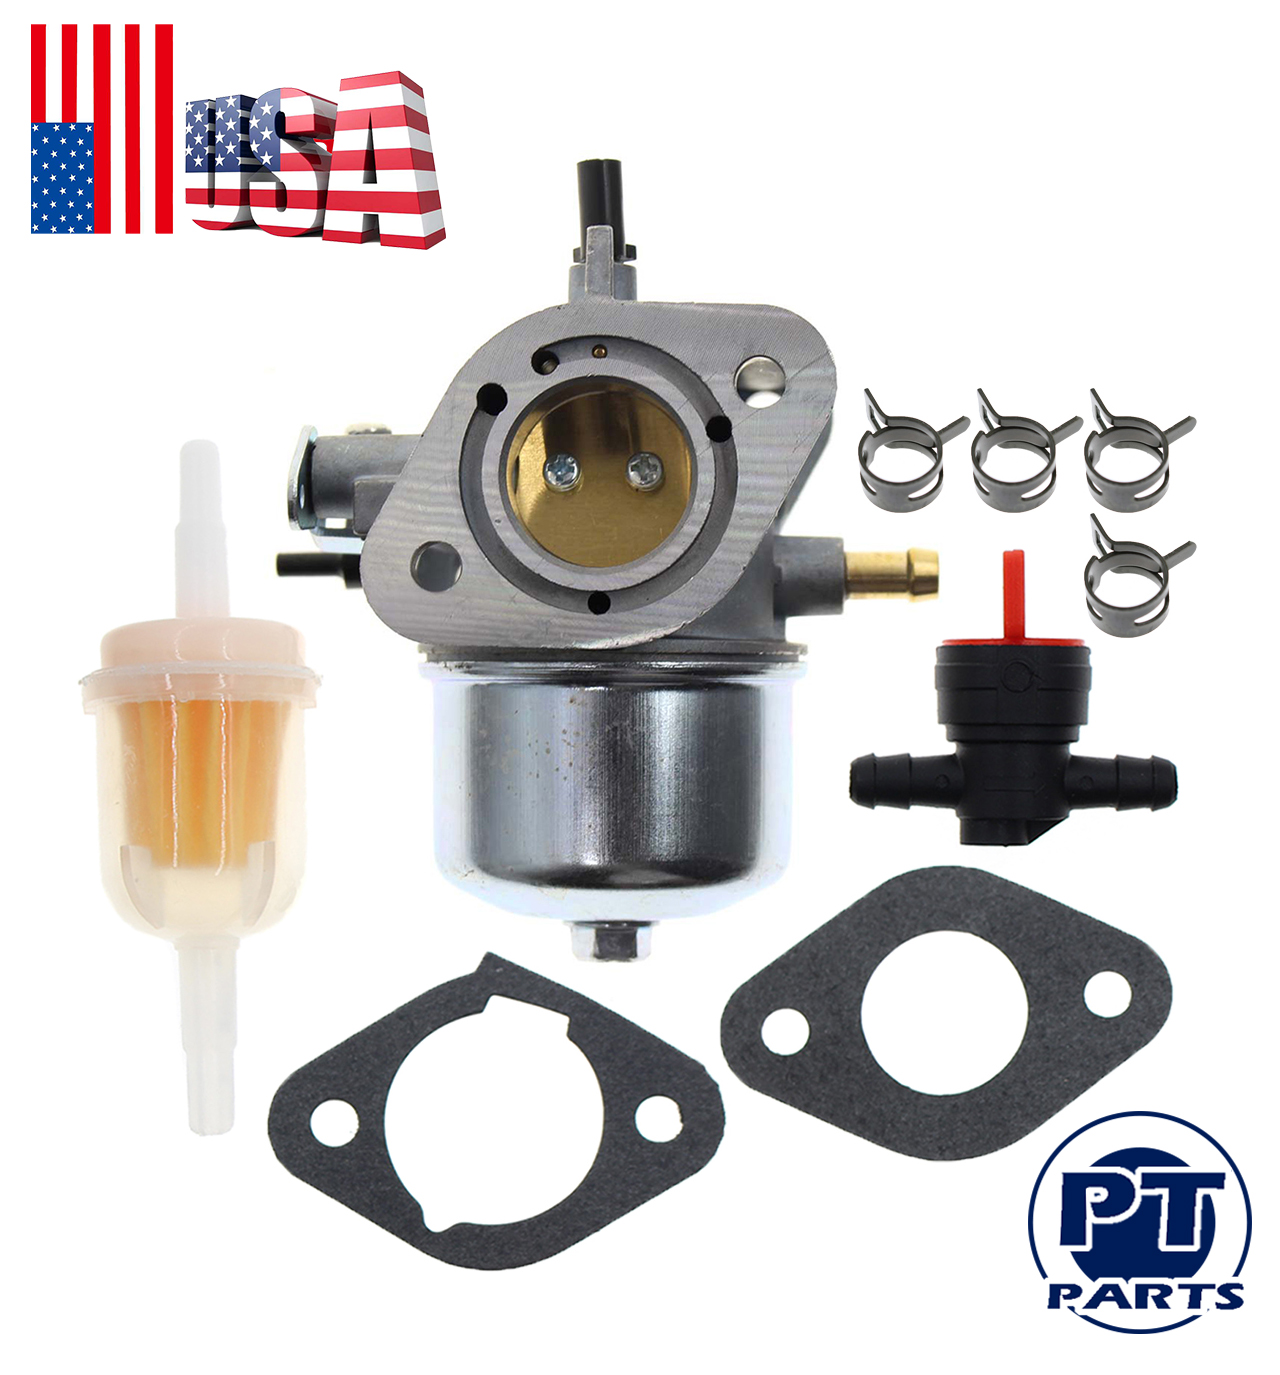 NEW CARBURETOR FOR FH430V FS481V KAWASAKI 14.5 HP RECOIL START ENGINE 15003-7061